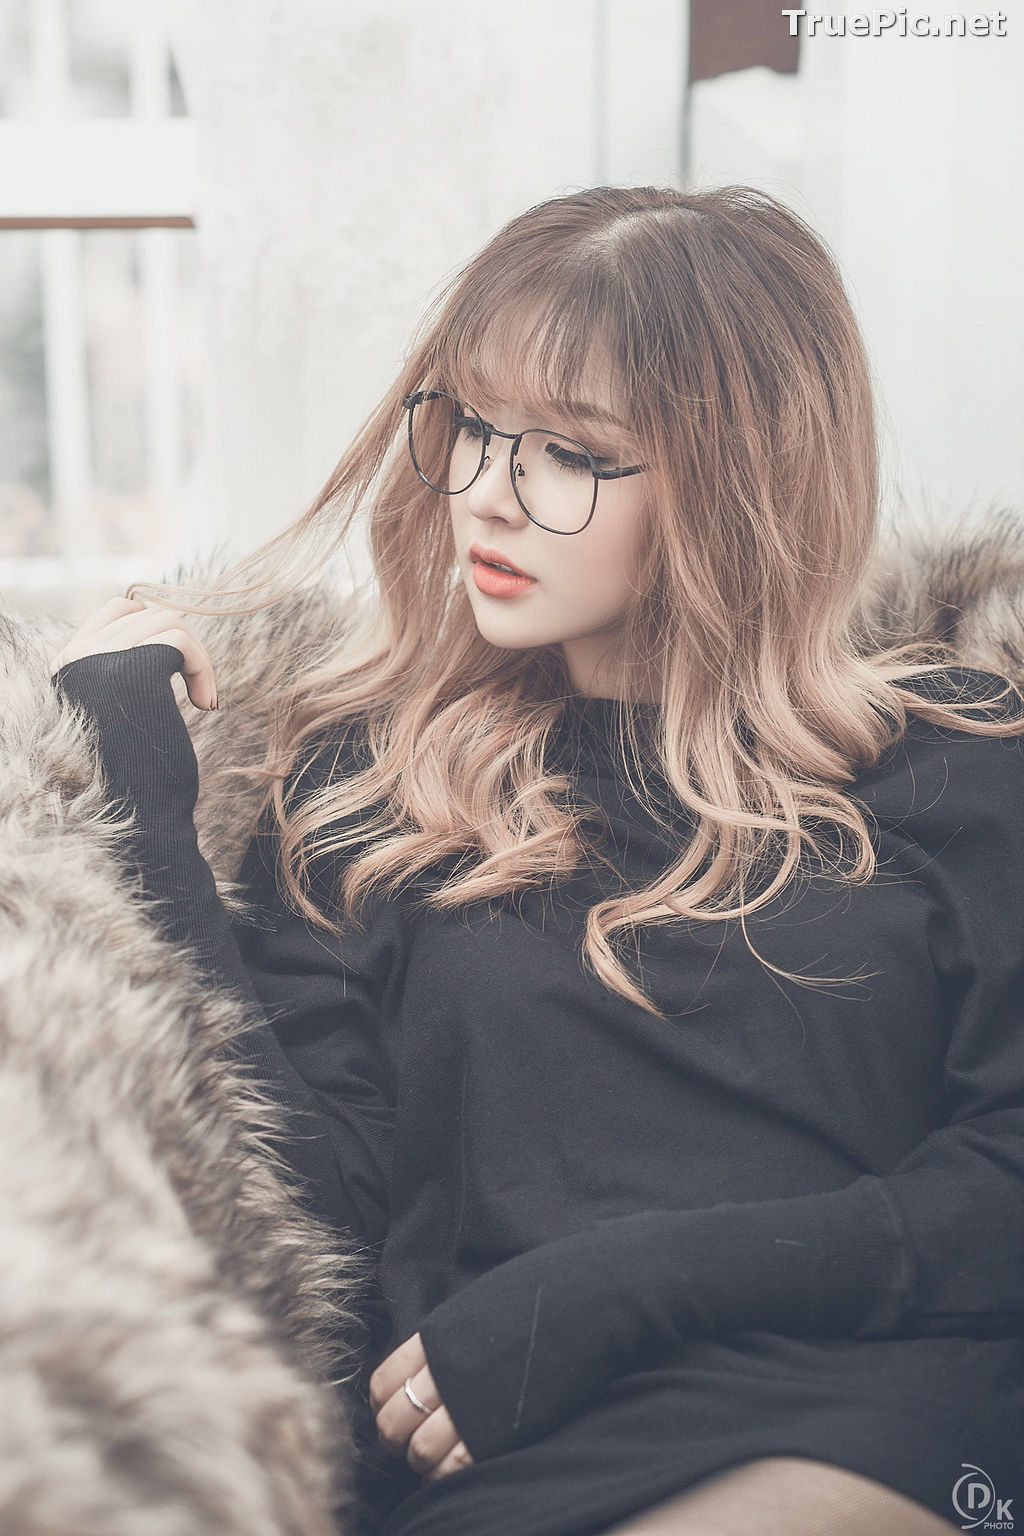 Image Vietnamese Model - Cute Glasses Girl With Black Dress - TruePic.net - Picture-6